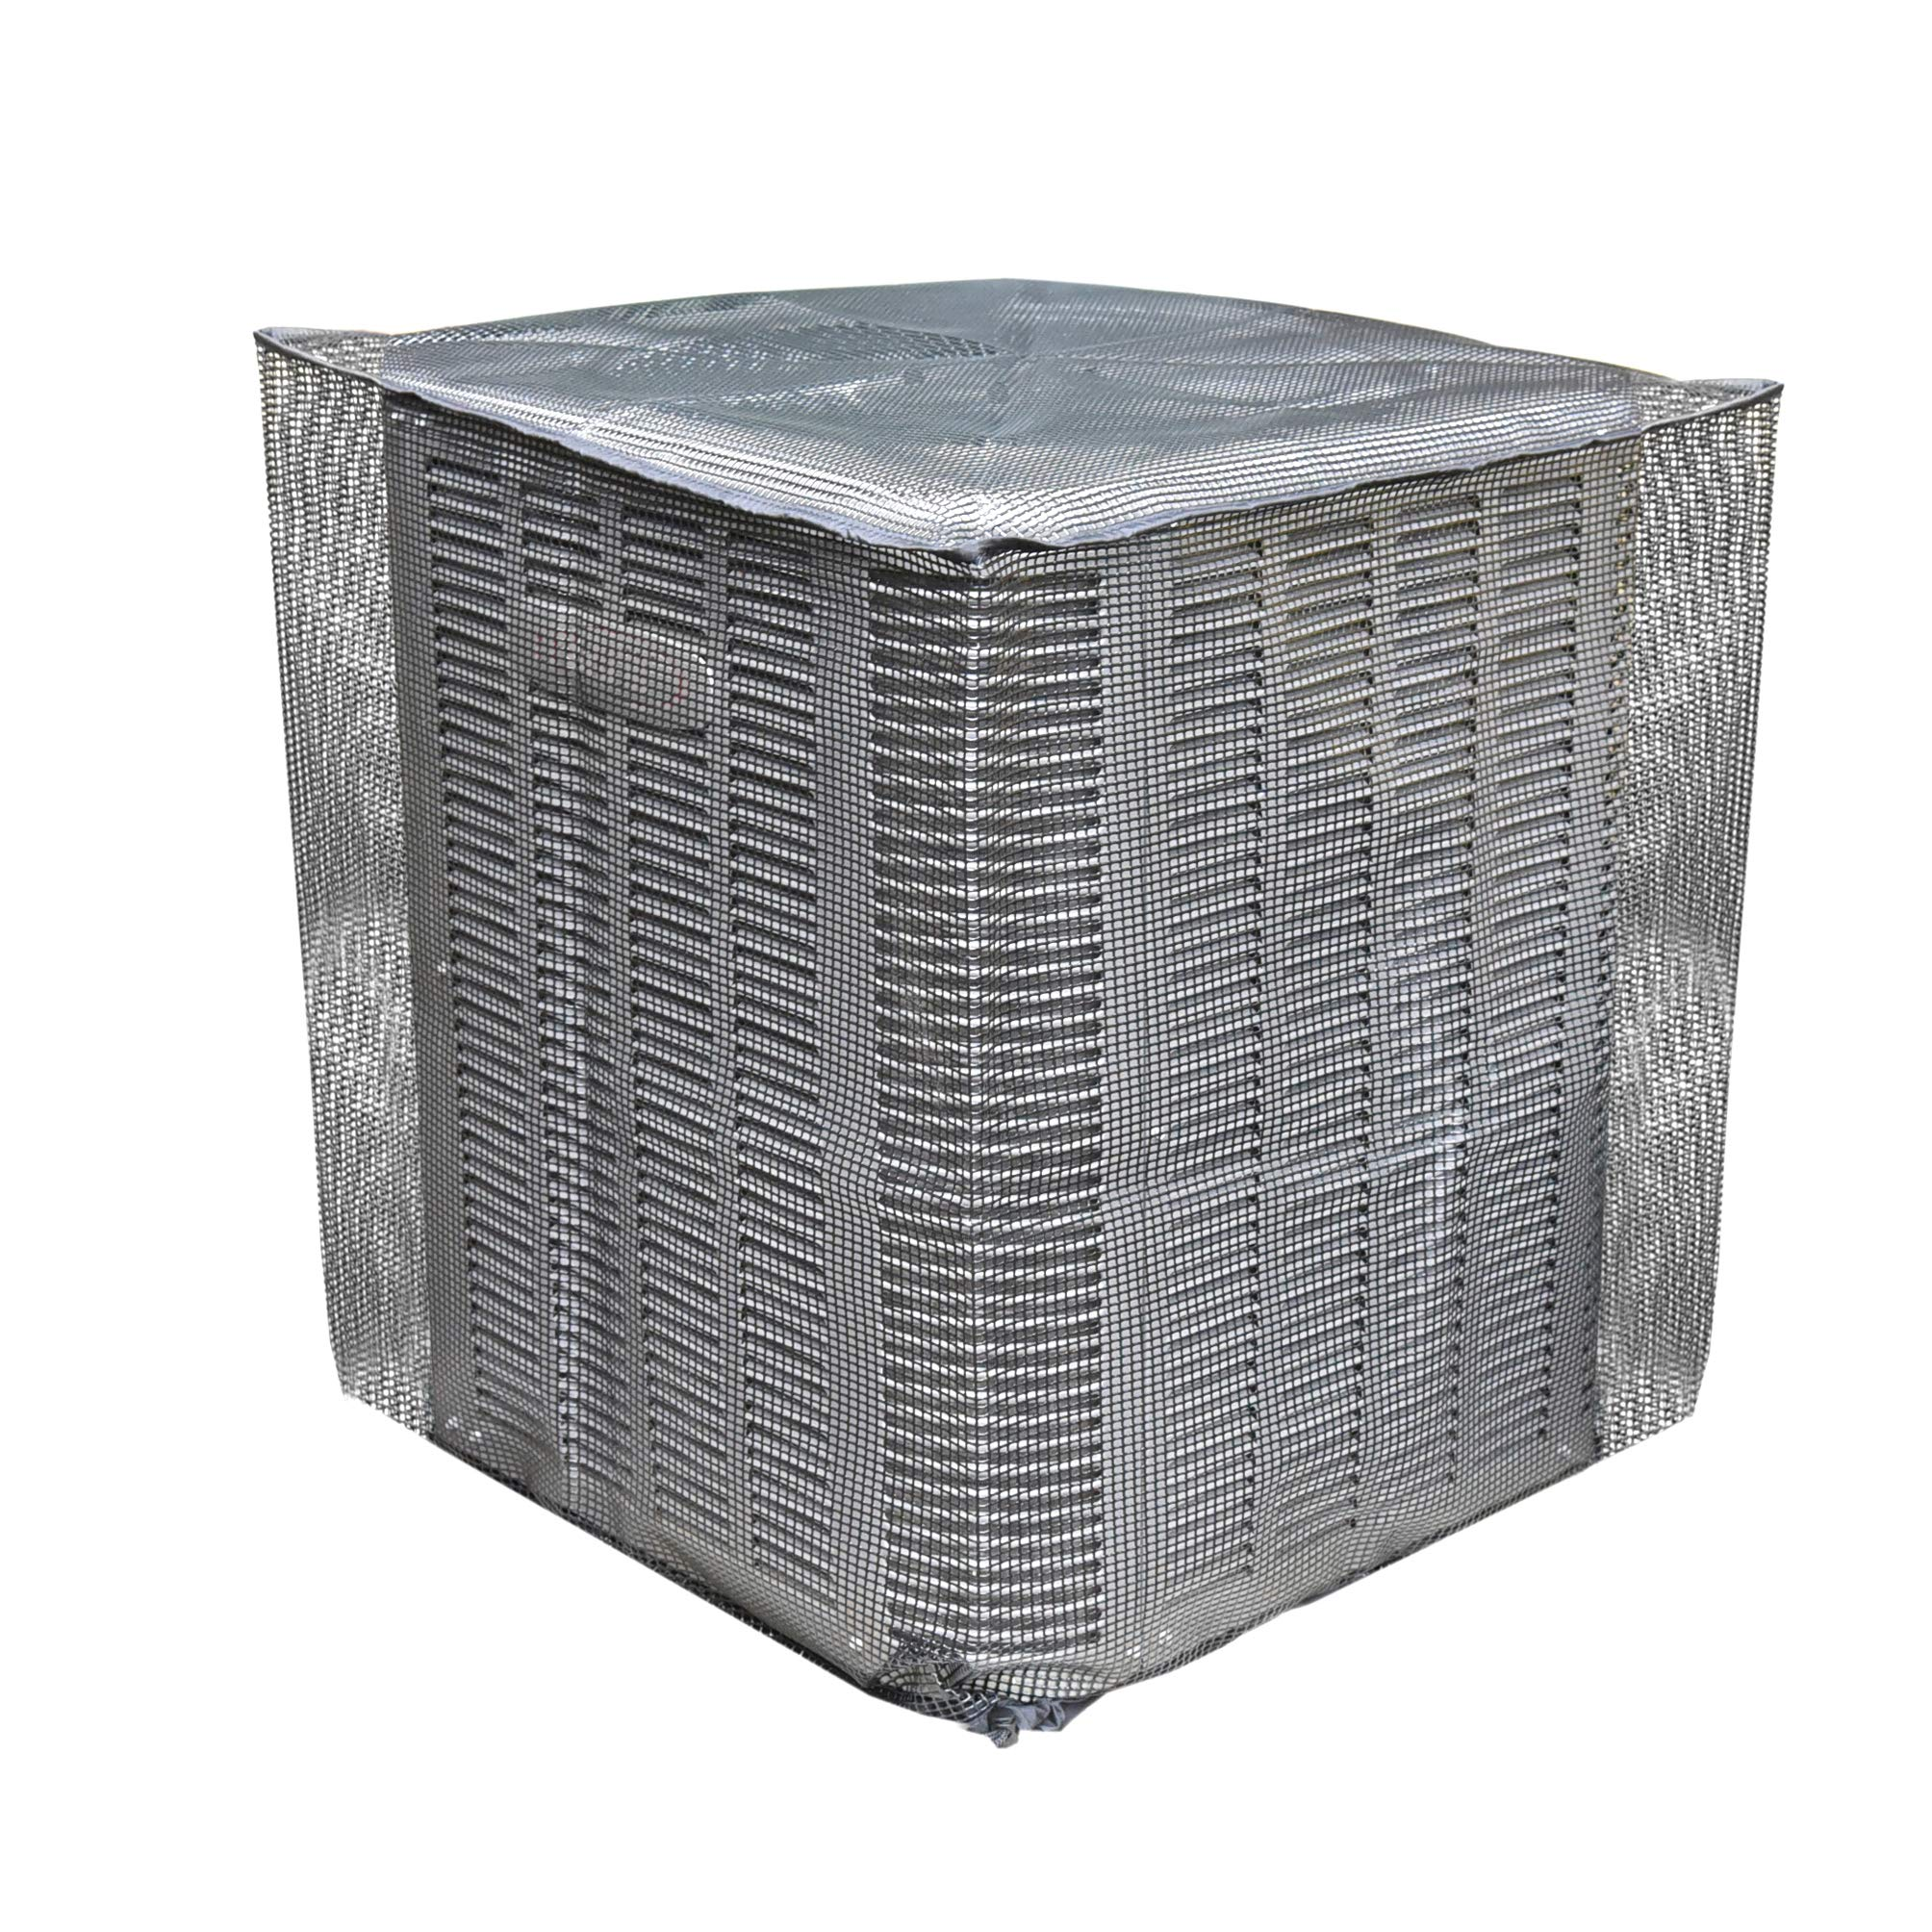 Sturdy Covers AC Defender - Full Mesh Air Conditioner Cover - AC Cover - Outdoor Protection by STURDY COVERS EST. 2015